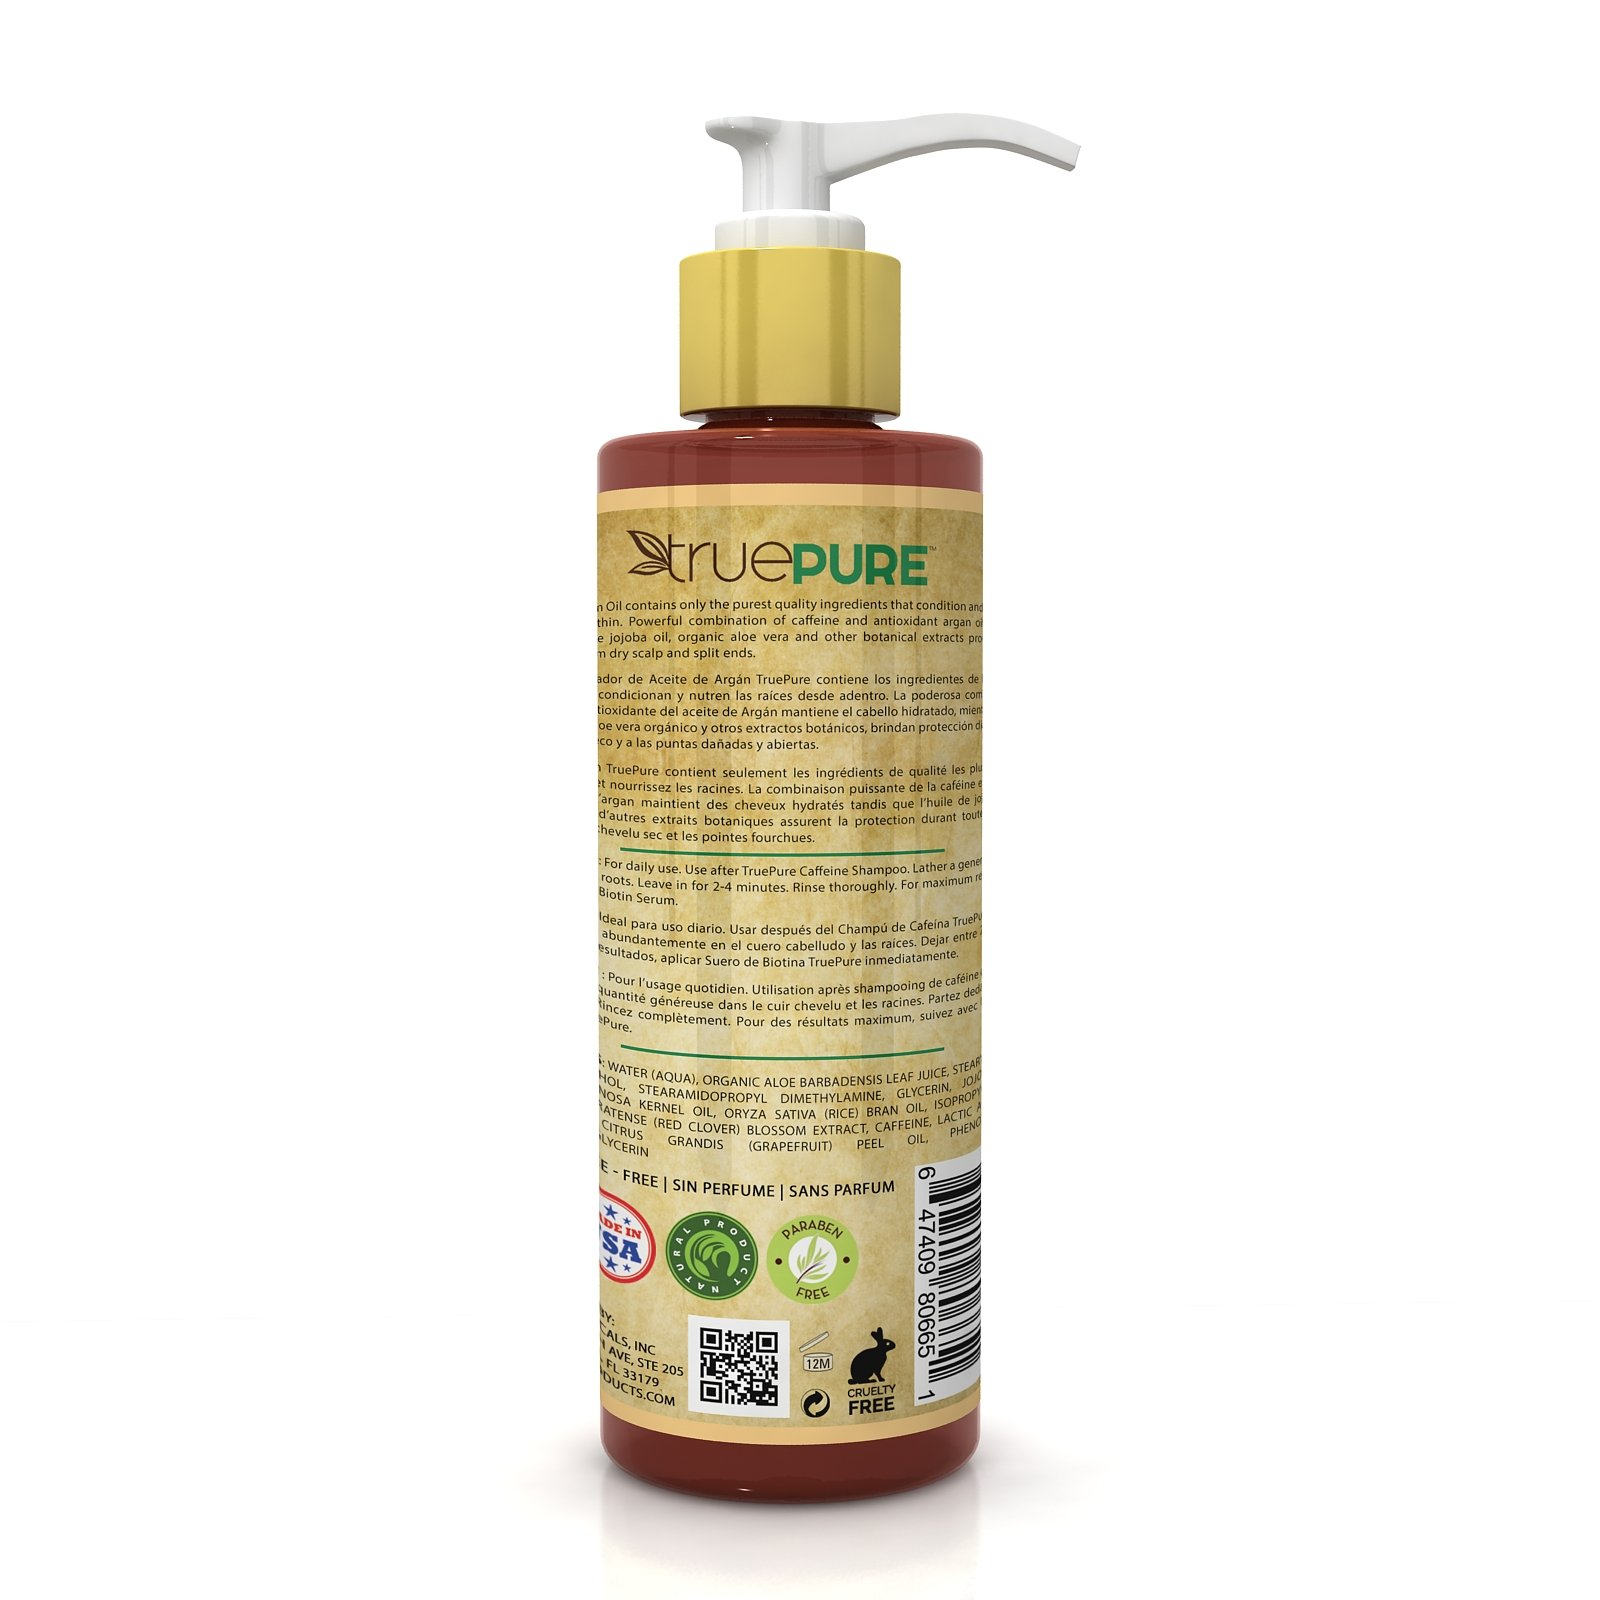 TruePure Argan Oil Conditioner - Deep Conditioning Hair Treatment For Men & Women With Dry, Damaged Hair - Fragrance Free & Sulfate Free Natural Hair Product, 8oz by TruePure (Image #2)